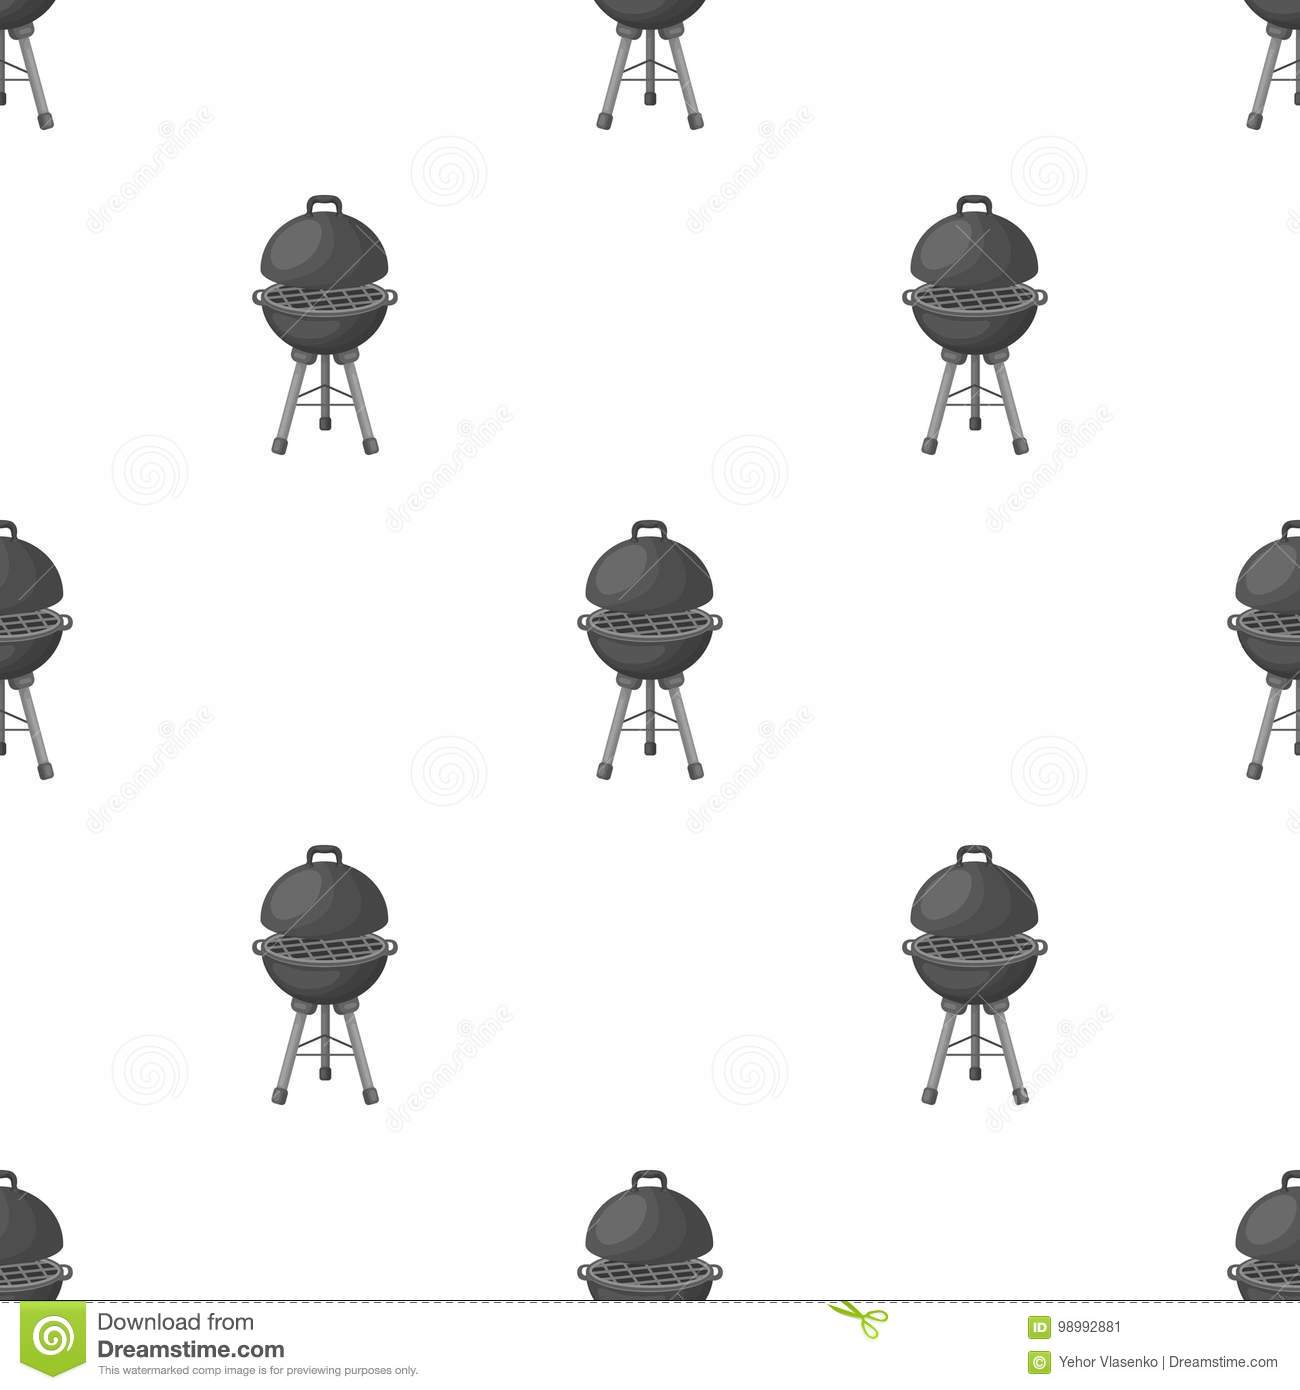 Gril pour le barbecue Icône simple de BBQ en Web monochrome d illustration d actions de symbole de vecteur de style